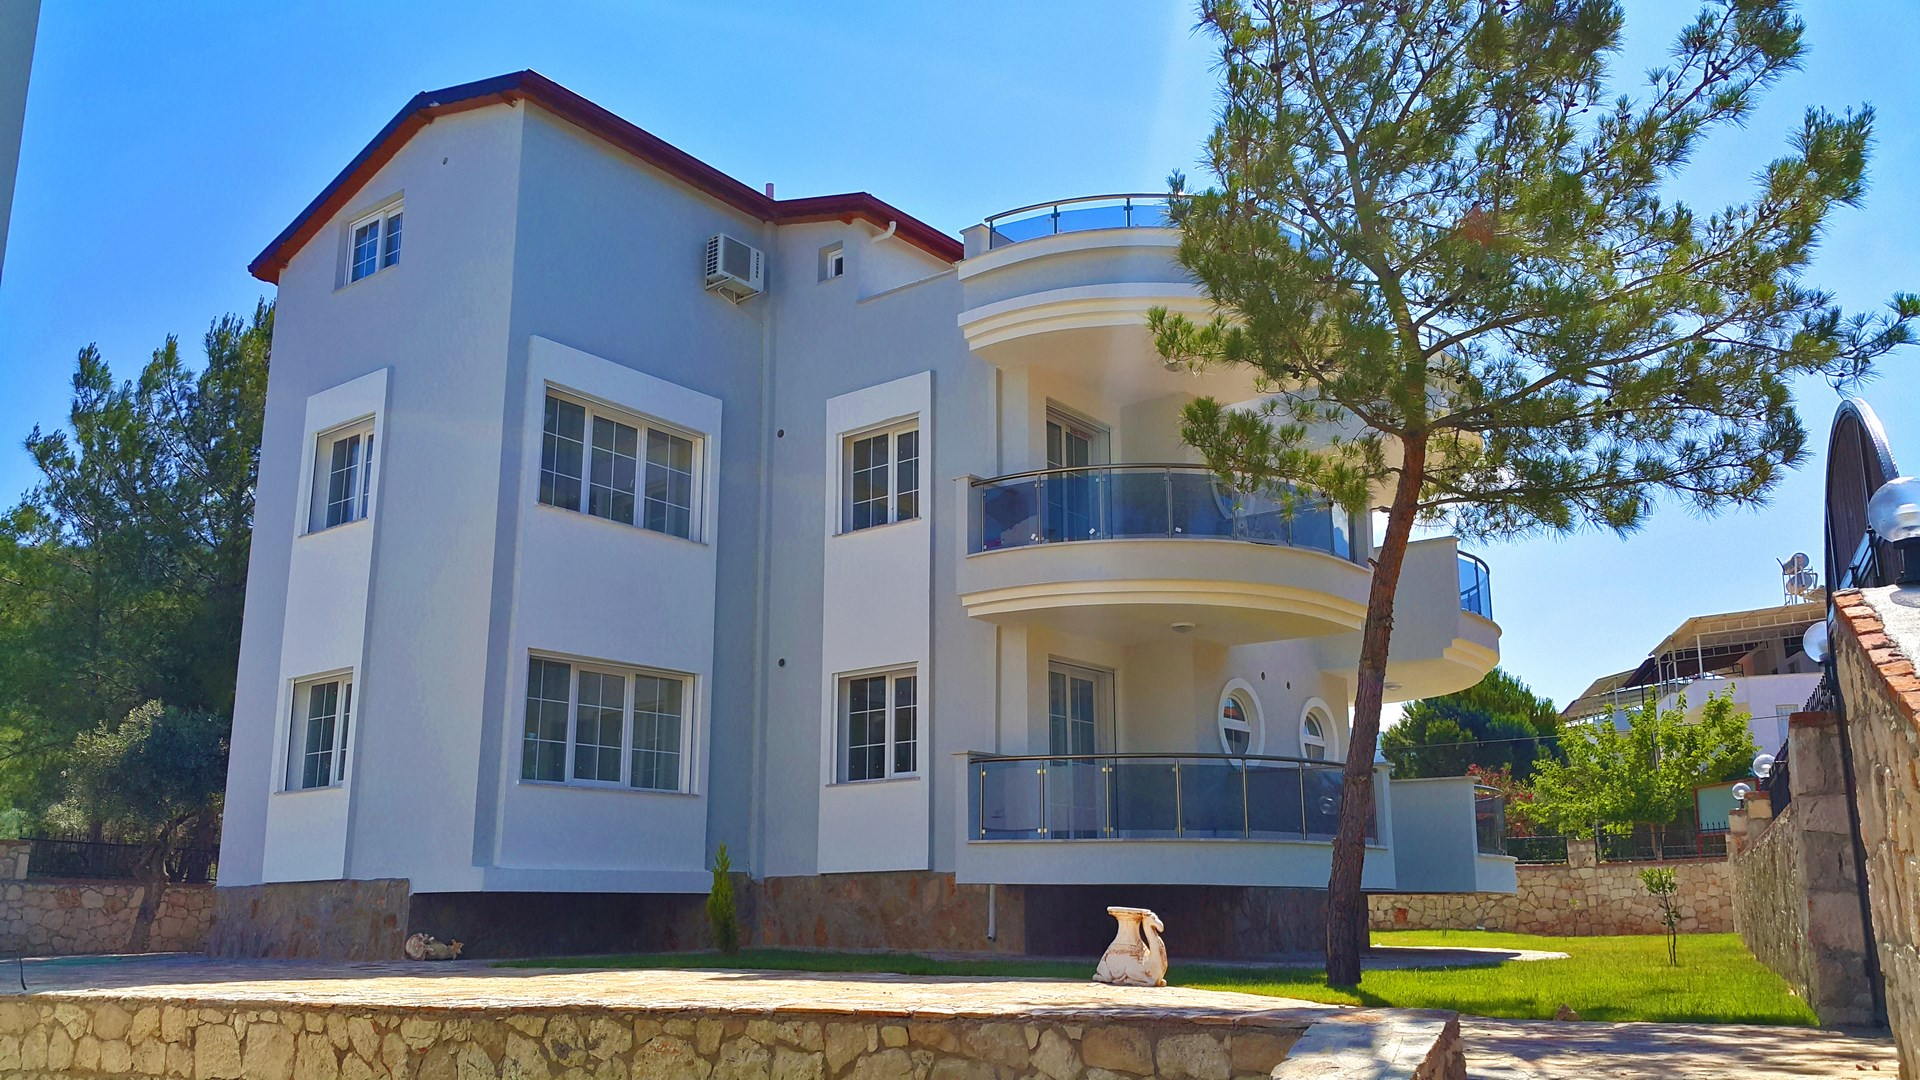 2 Bedroom apartment with swimming pool for sale in Akbuk Turkey (sold out)